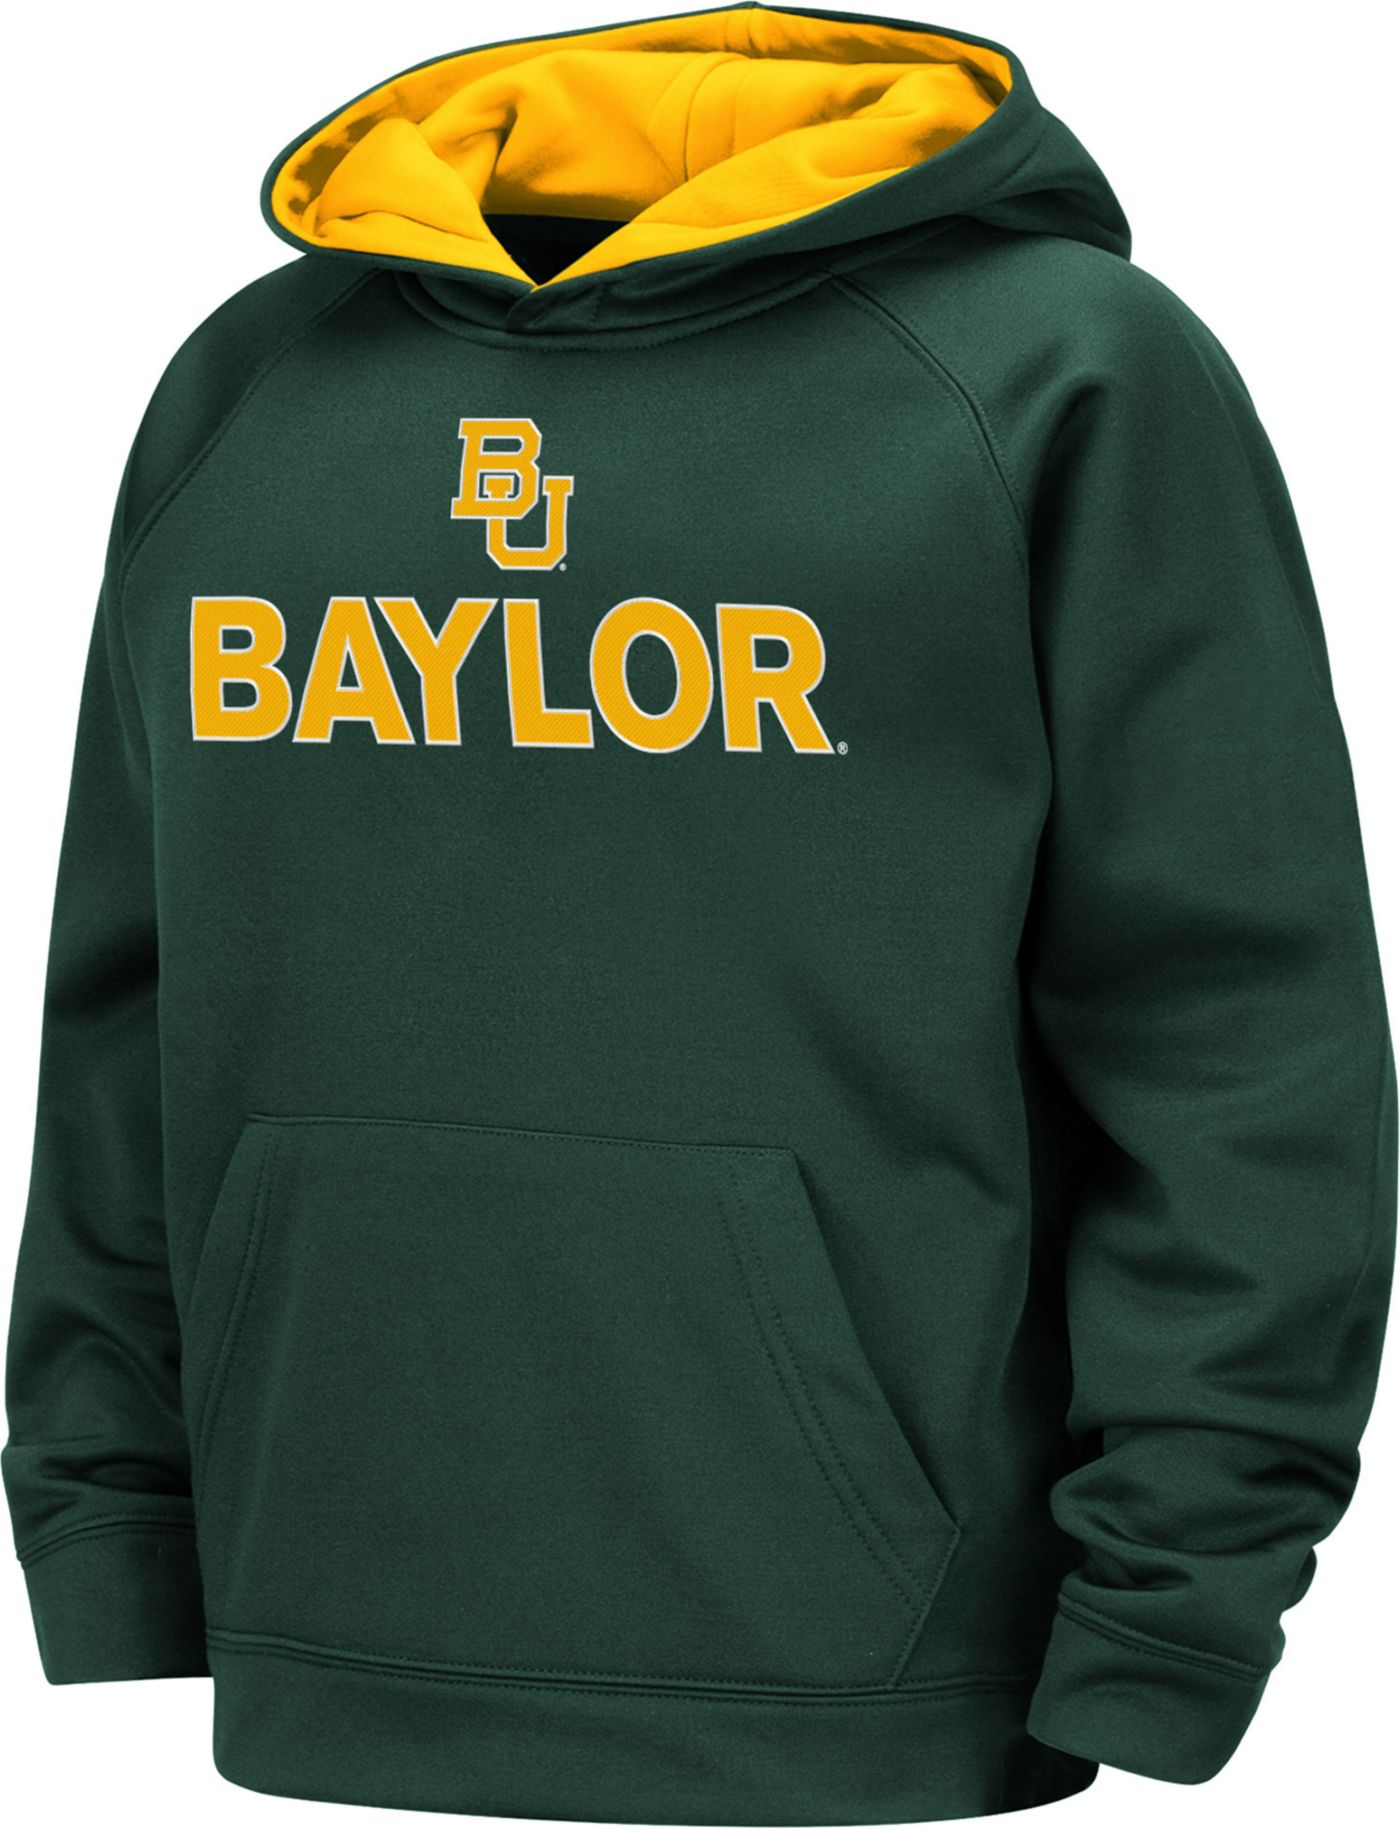 Colosseum Boys' Baylor Bears Green Pullover Hoodie